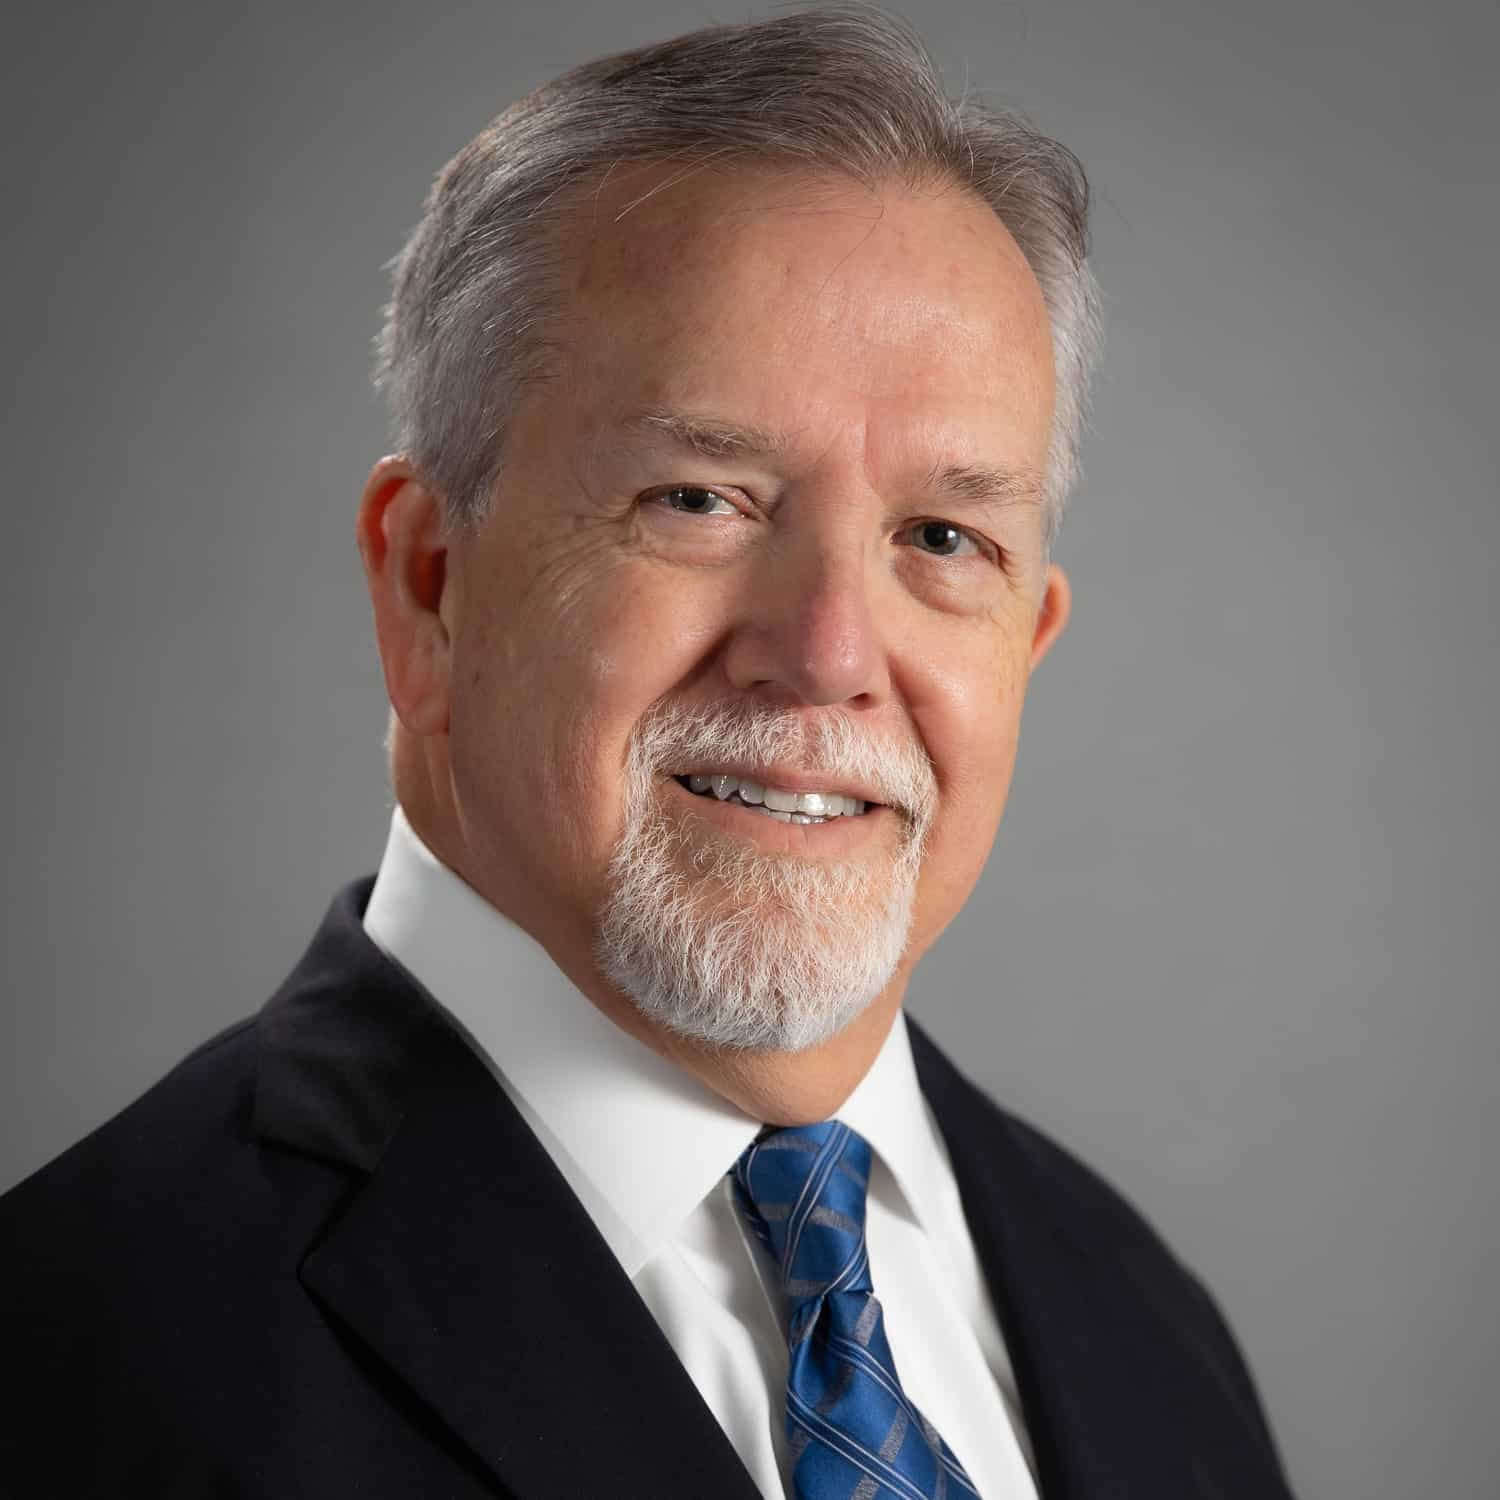 Mario Hernandez is Chief Accounting Officer at Ranger Energy Services